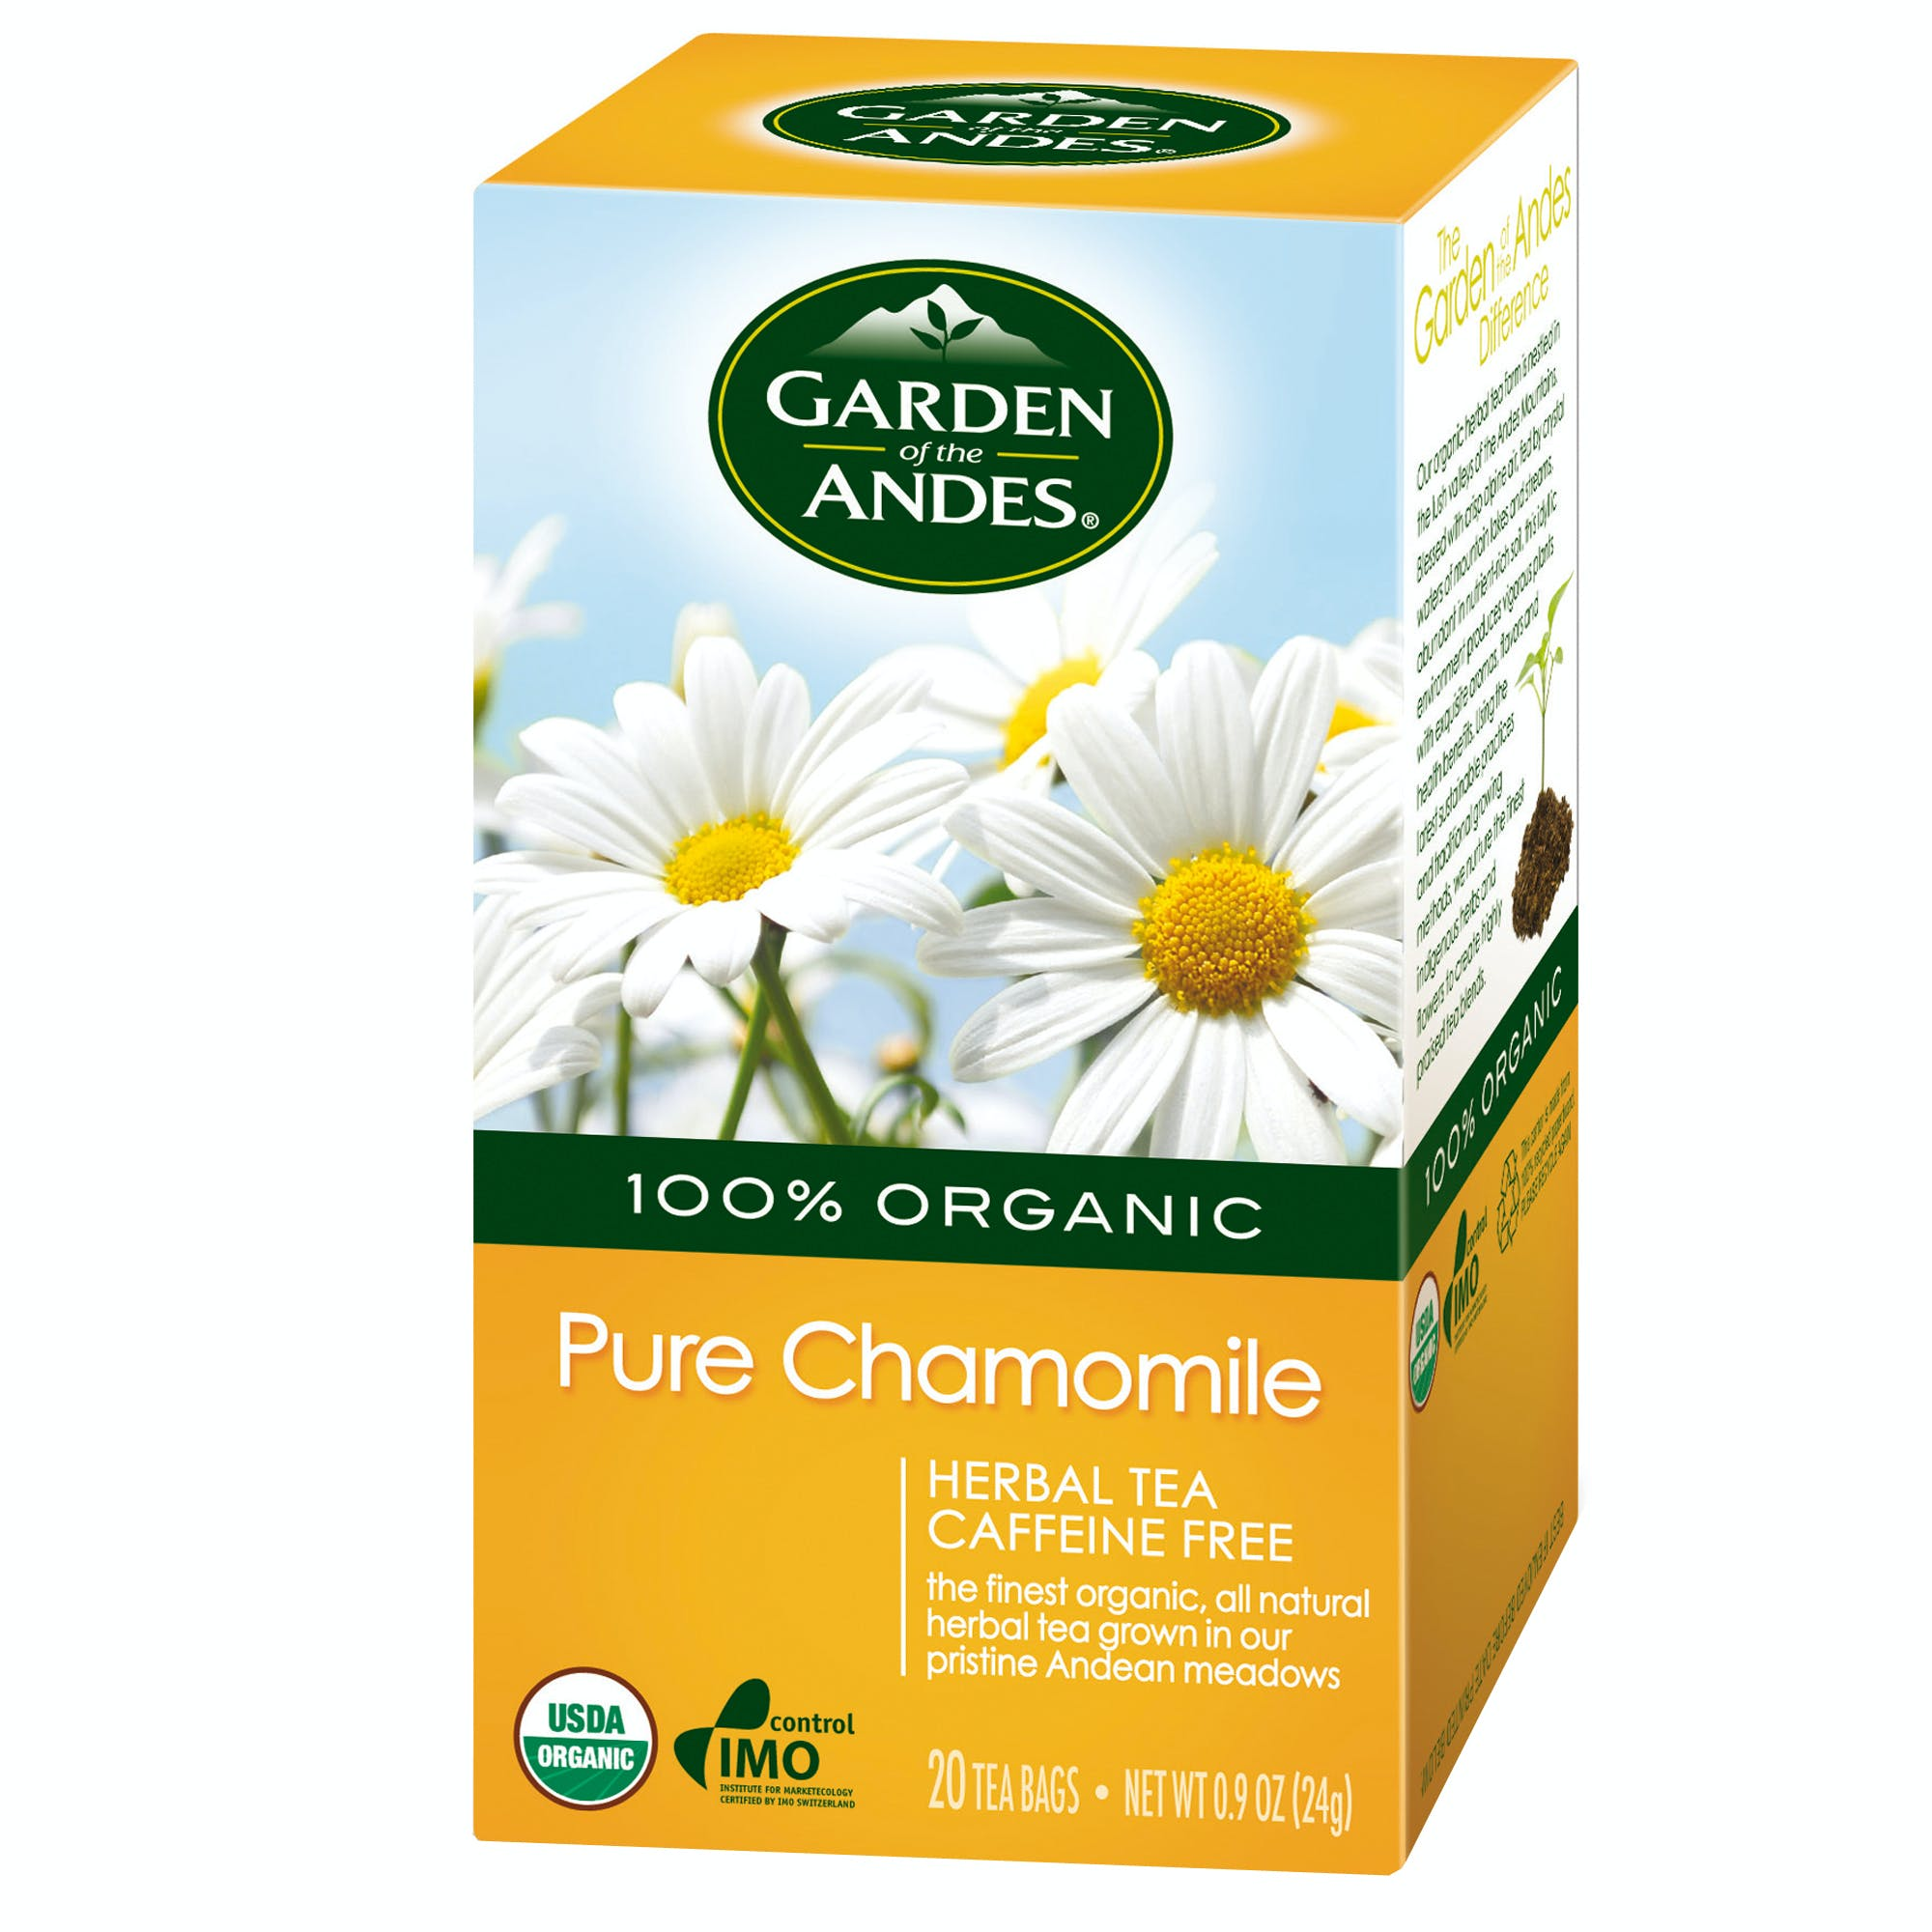 Organic Pure Chamomile Tea Tea sold by M5 Corporation